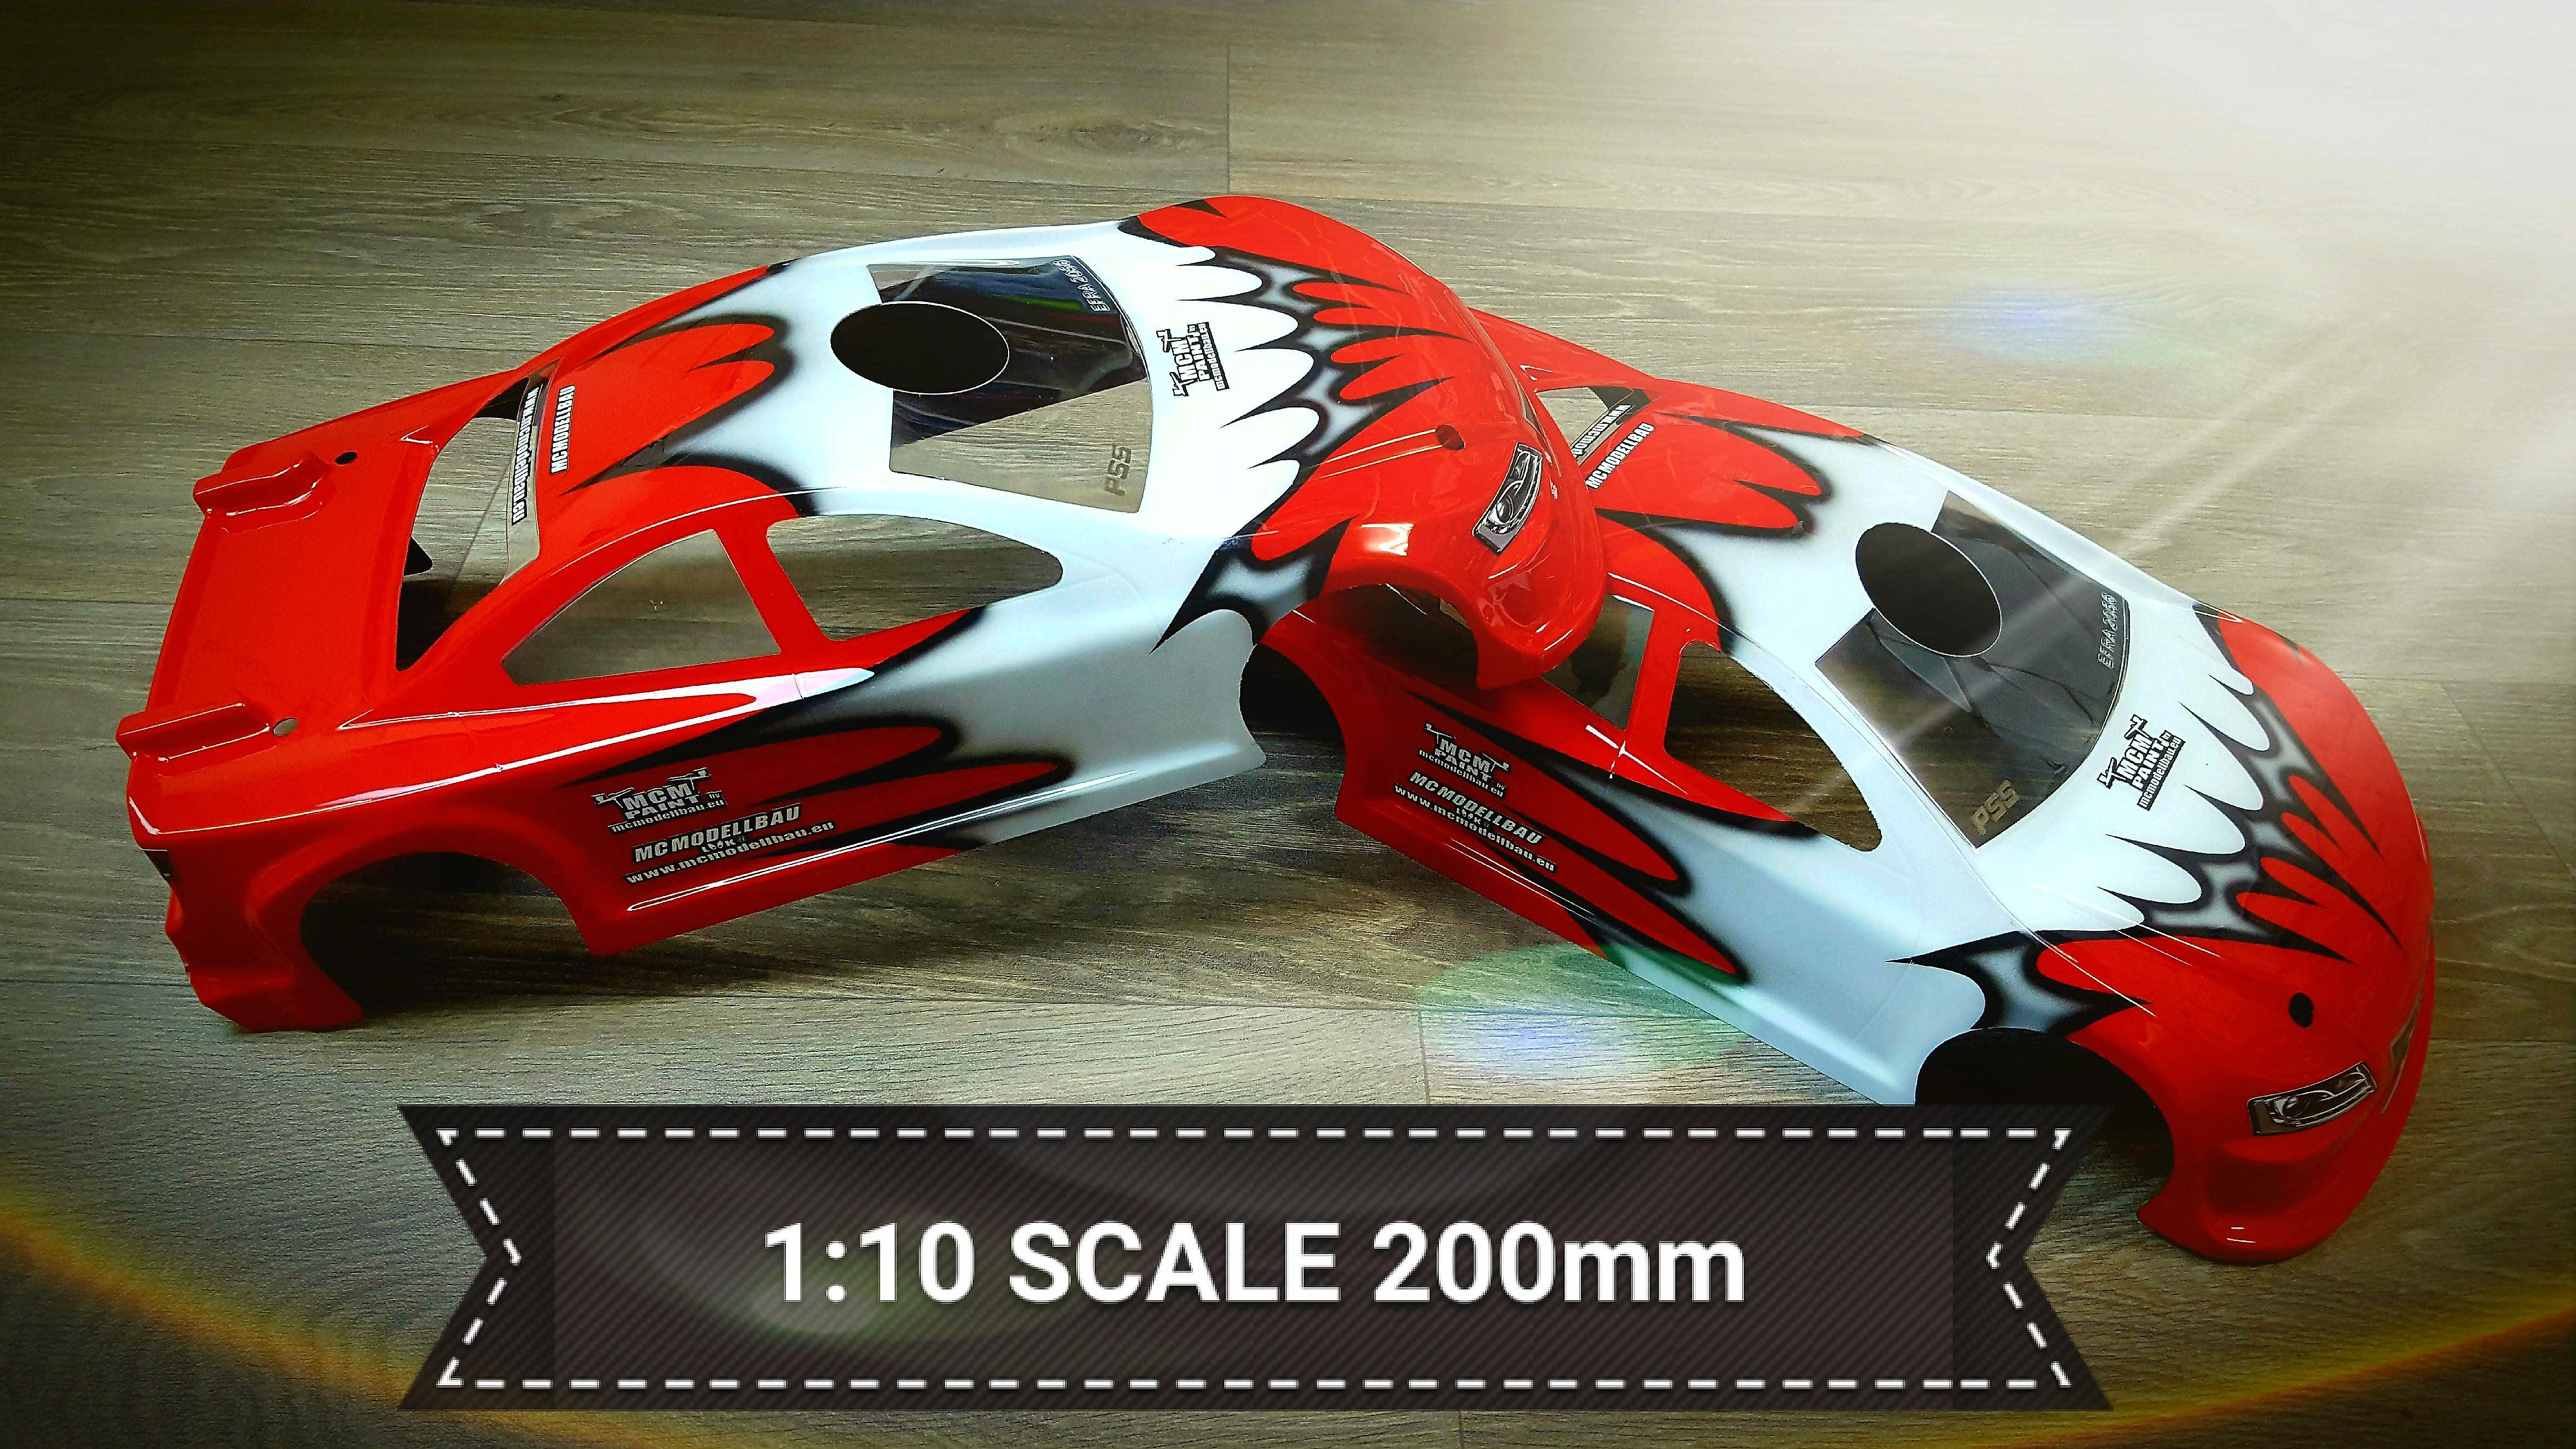 1:10 Scale 200mm